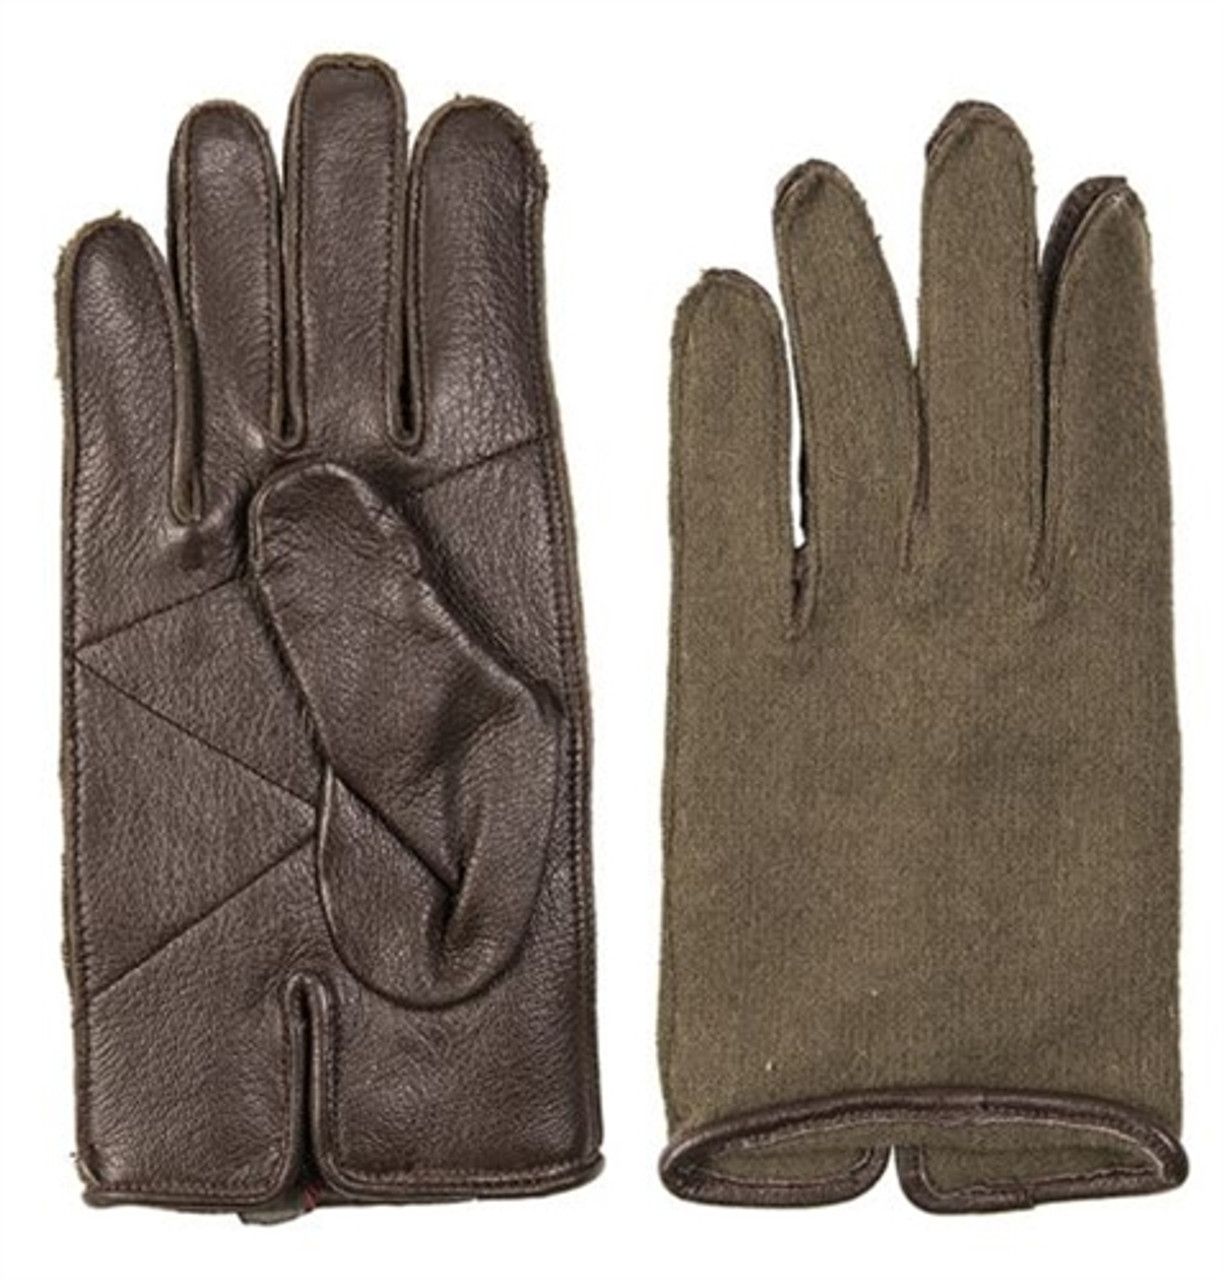 French Army OD Leather & Wool Gloves from Hessen Antique